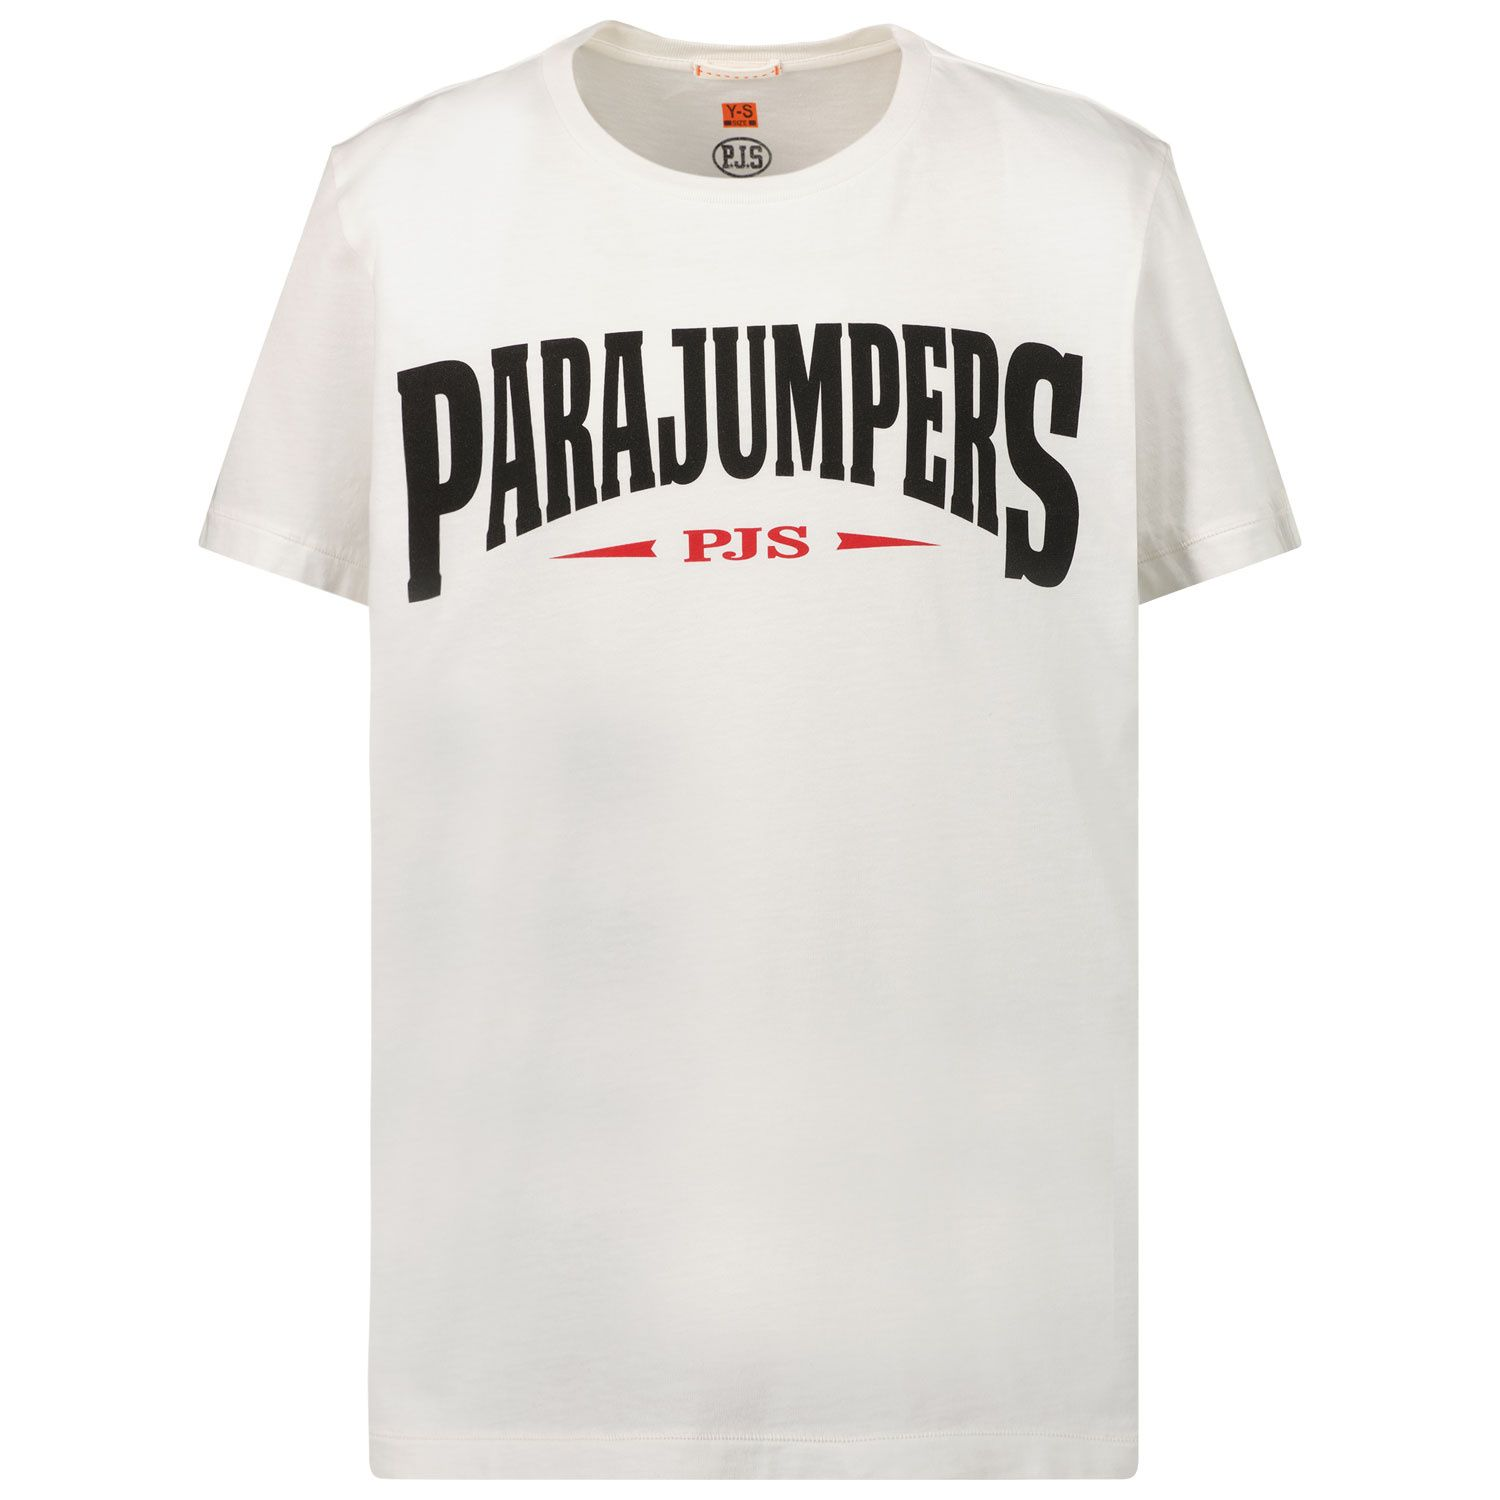 Afbeelding van Parajumpers TS63 kinder t-shirt off white